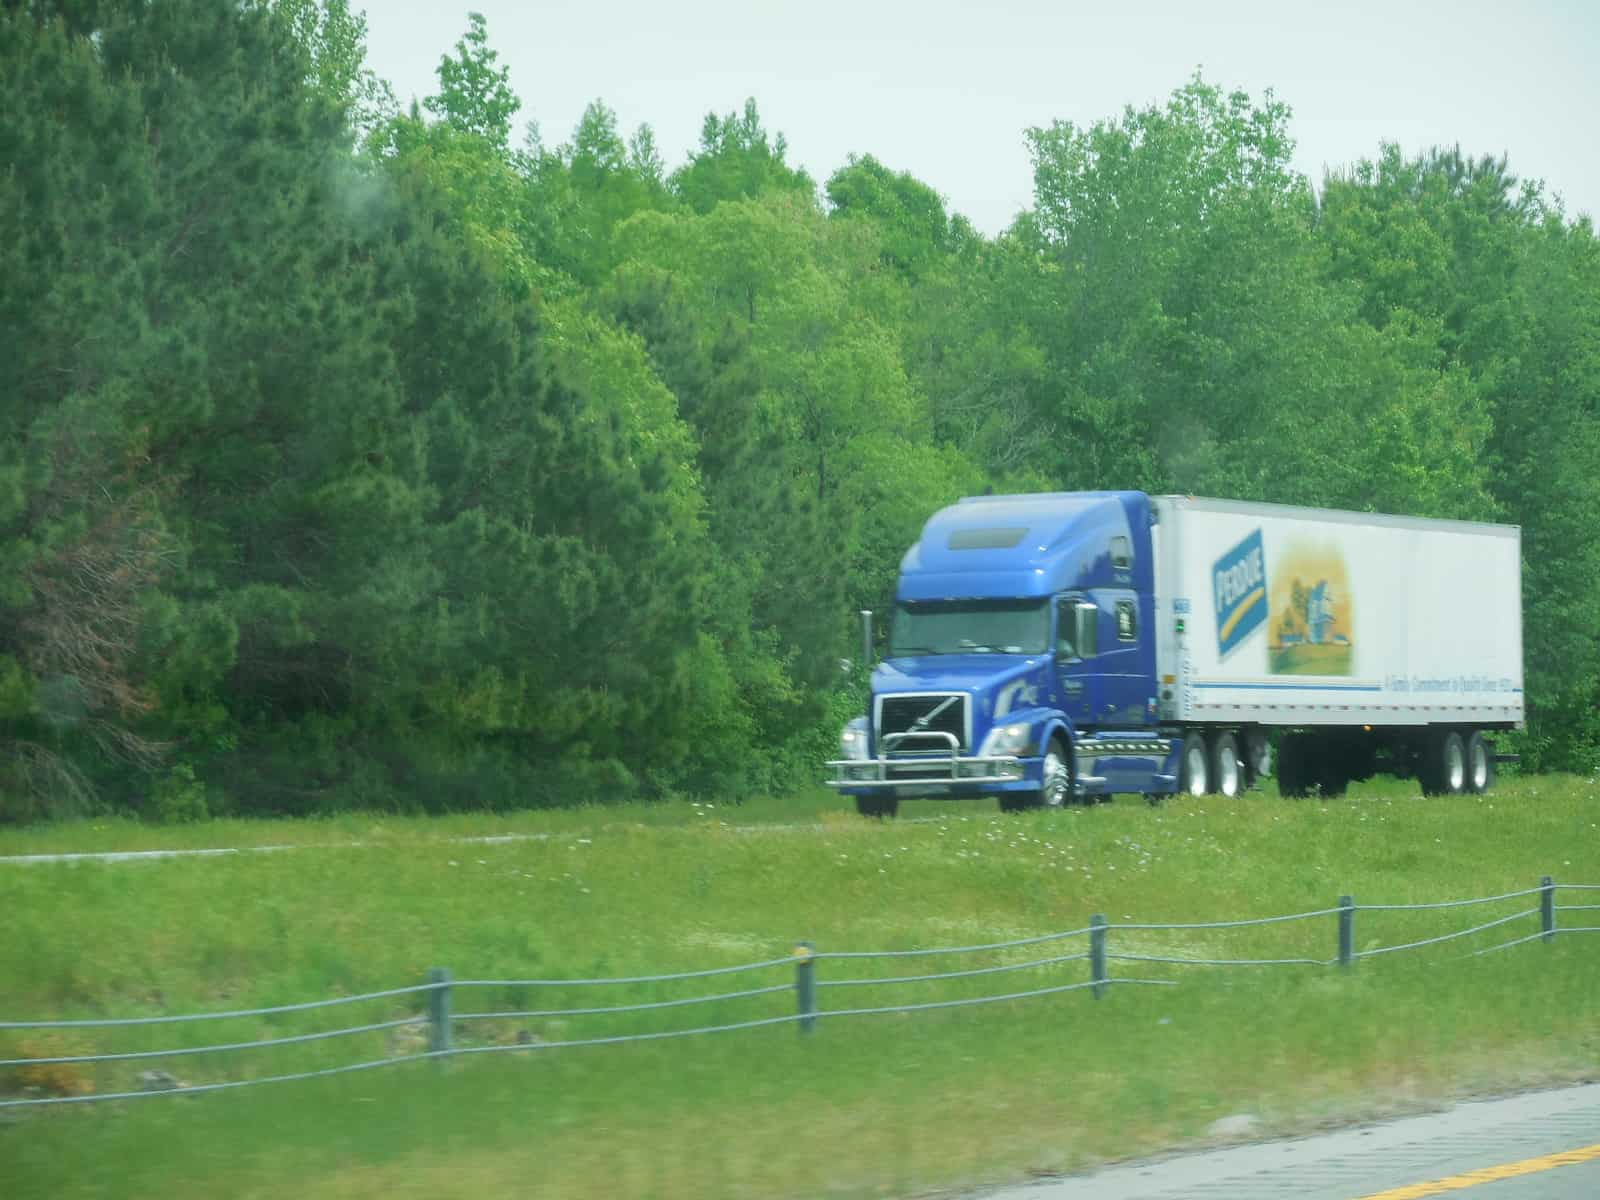 Michigan Asparagus Shipments Look Promising Despite Late Start